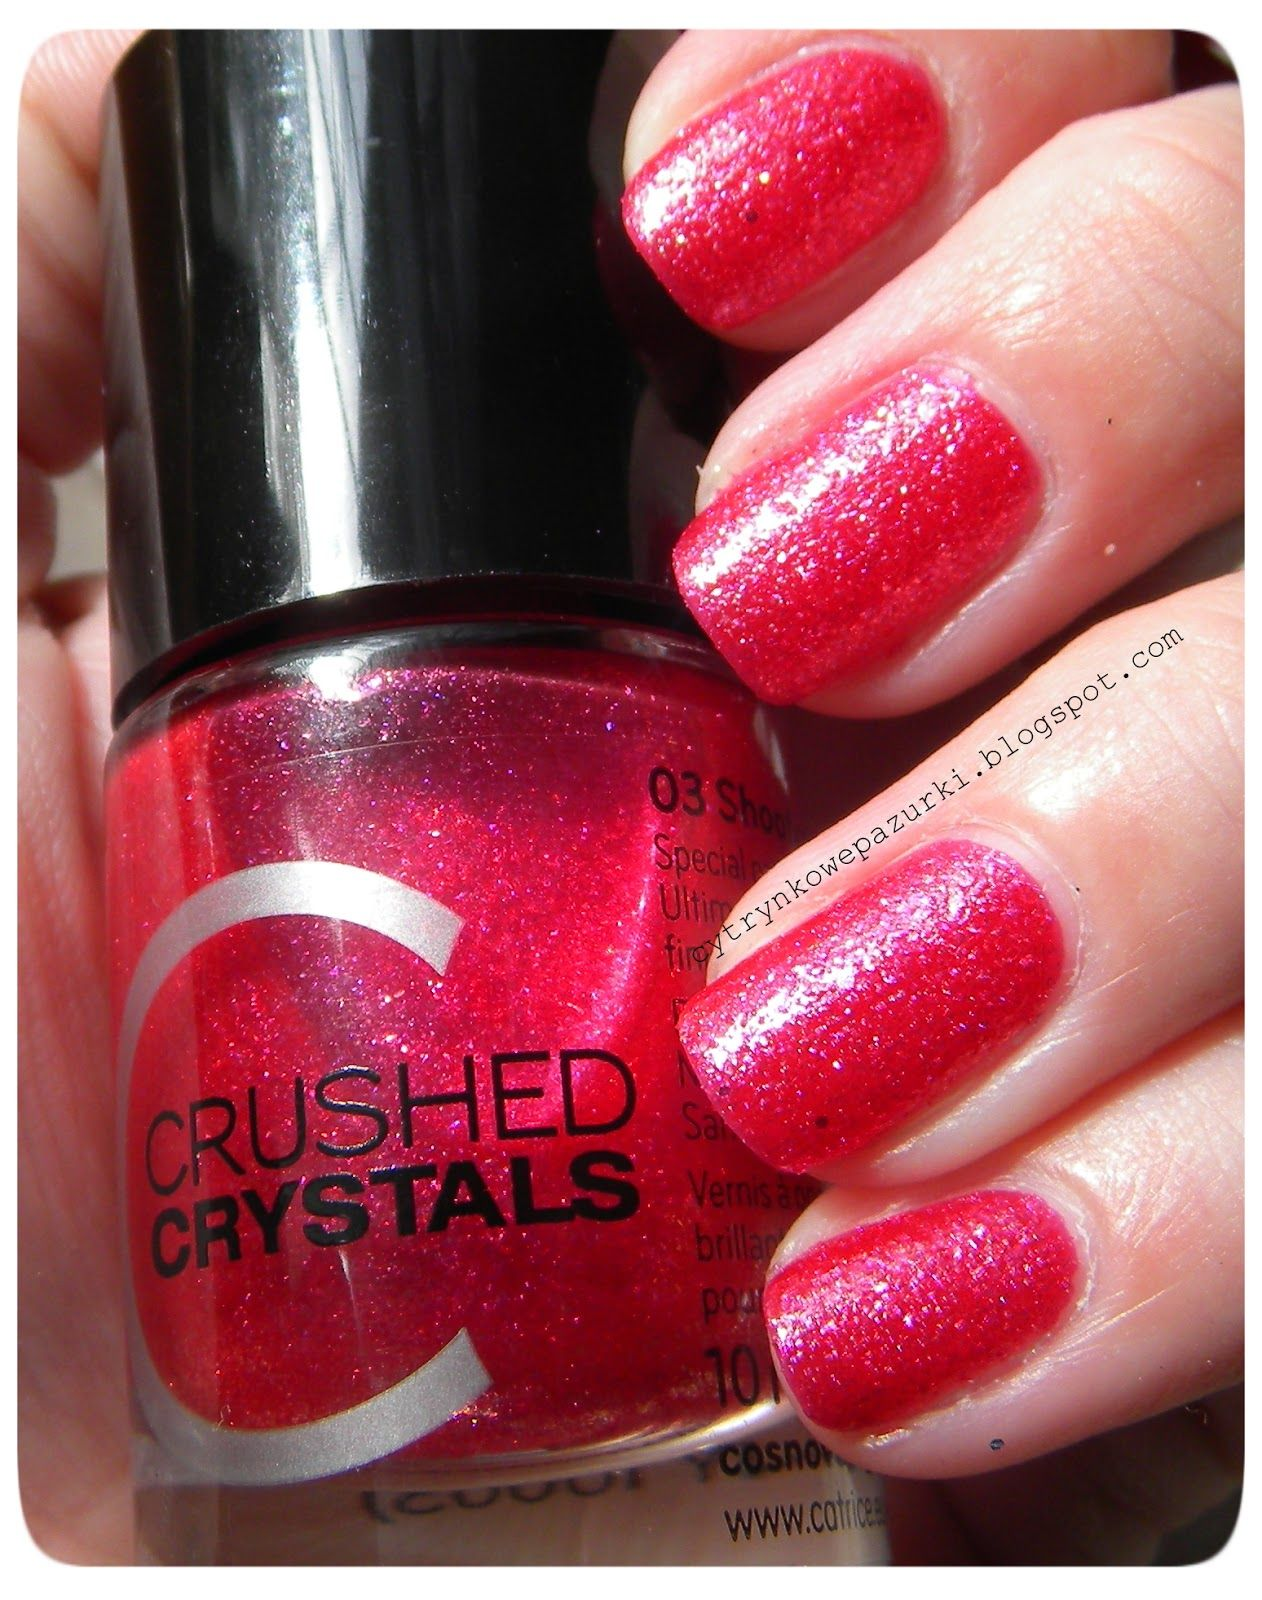 Catrice Crushed Crystals 03 Shooting Star Lakier Do Paznokci